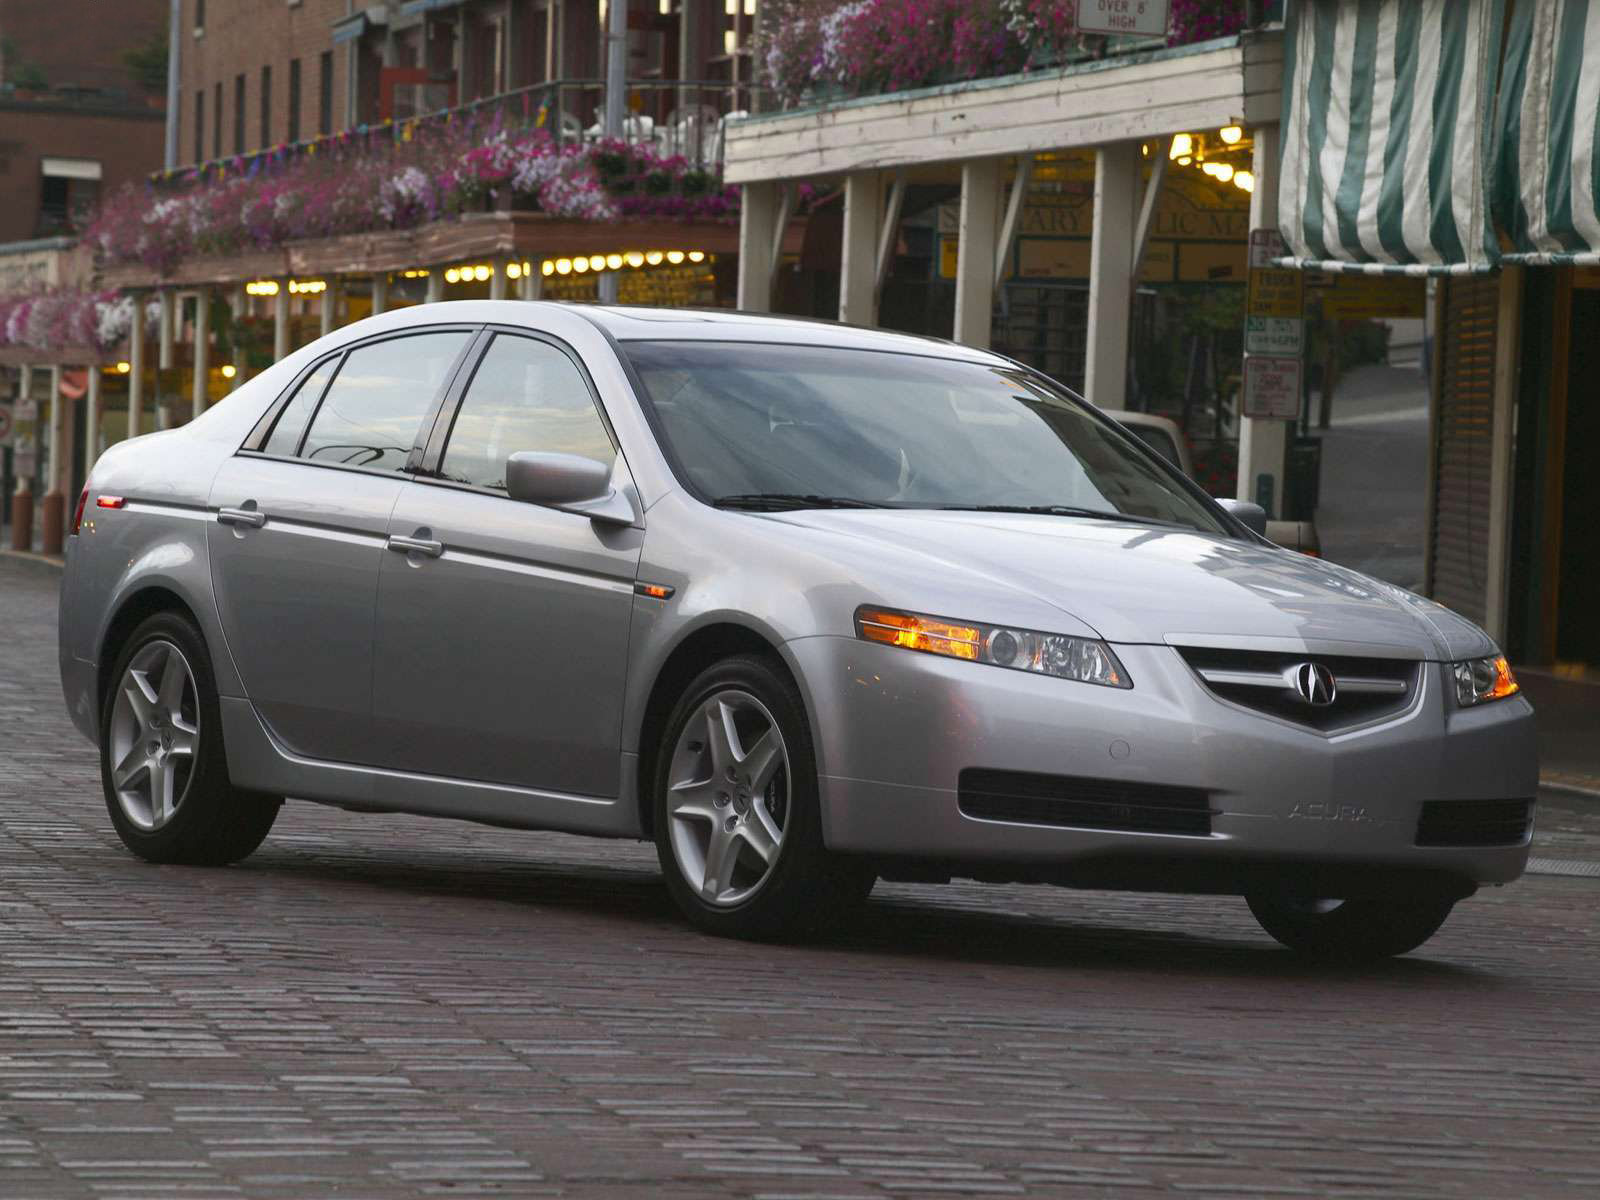 japanese car photos 2005 acura tl car insurance. Black Bedroom Furniture Sets. Home Design Ideas